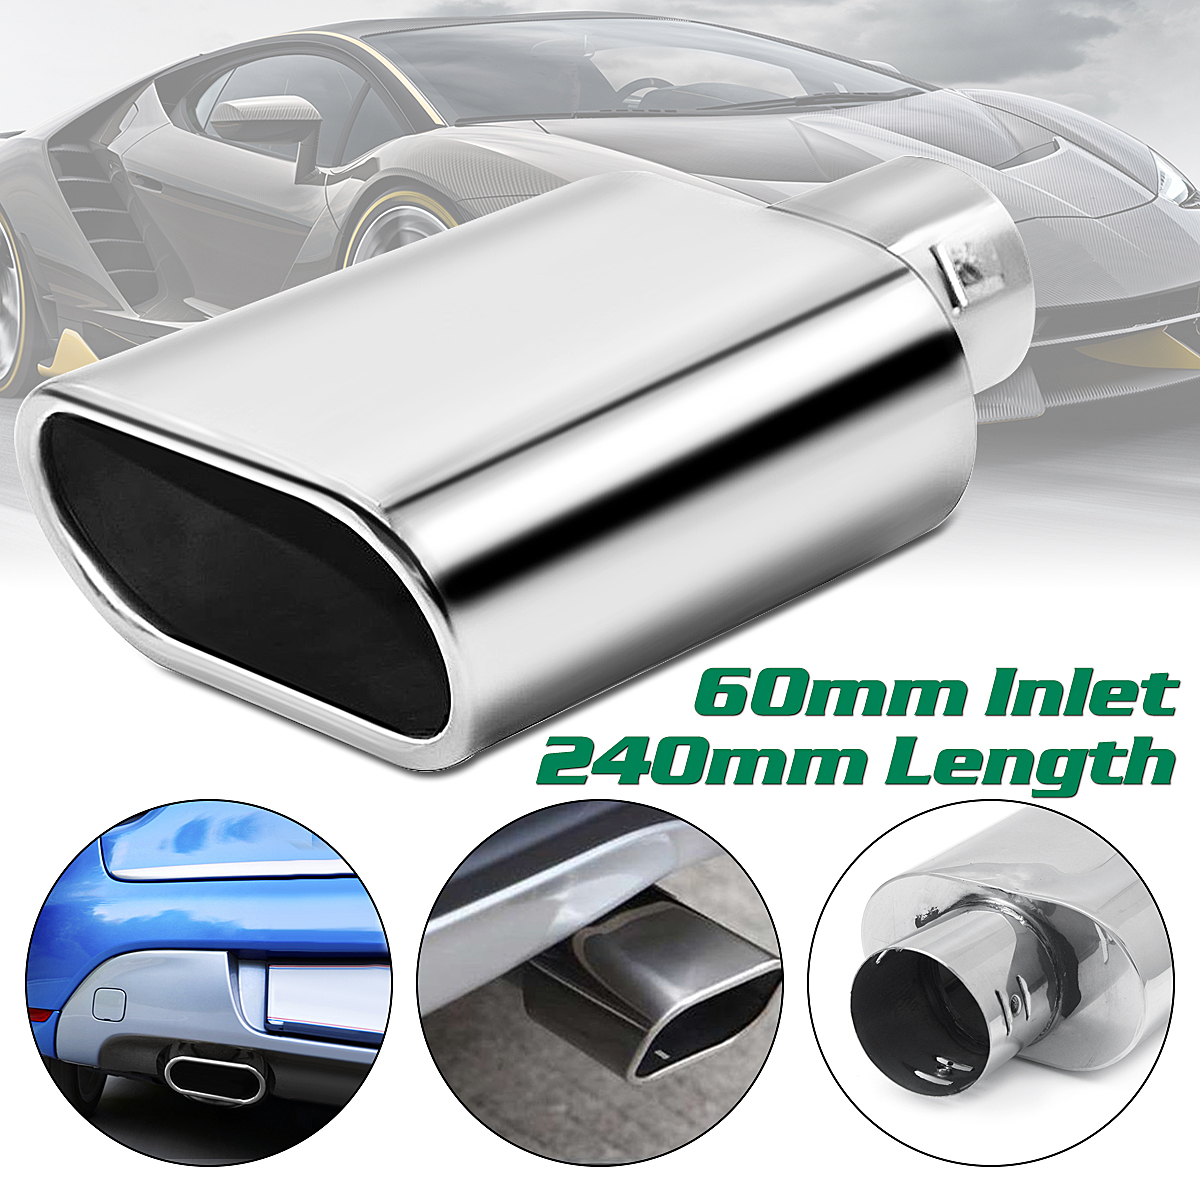 Universal Car Decoration Flat Chrome Stainless Steel Car Muffler Exhaust Tail Throat Liner pipe 60mm for BMW for Benz for Audi